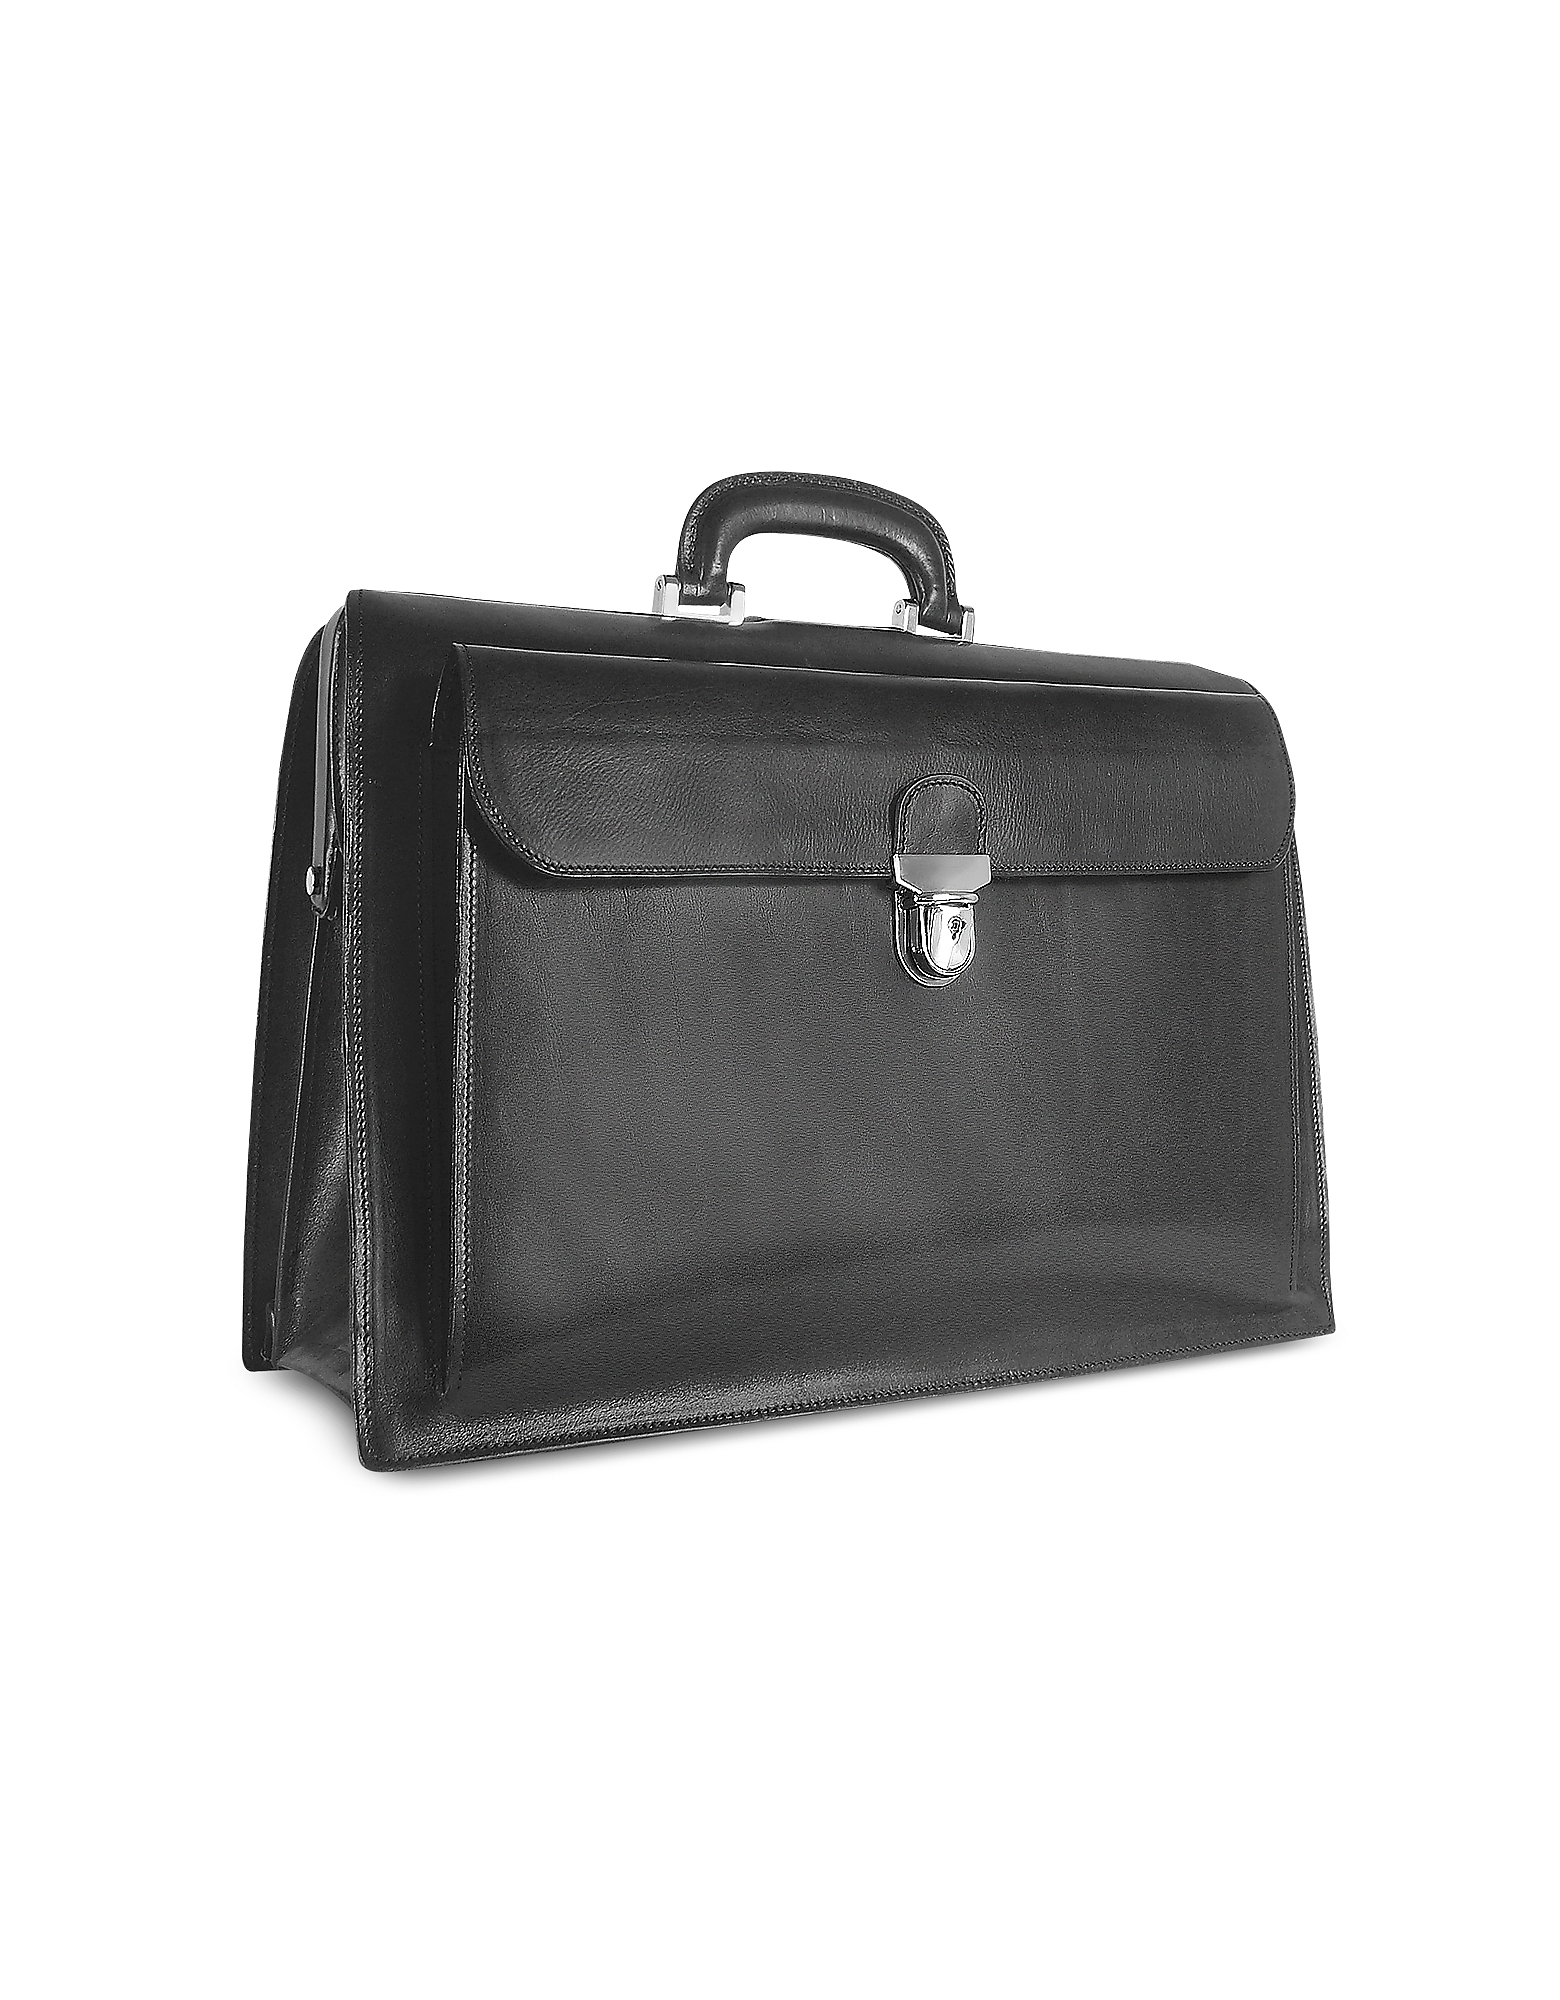 Forzieri Designer Briefcases,  Black Italian Leather Buckled Large Doctor Bag